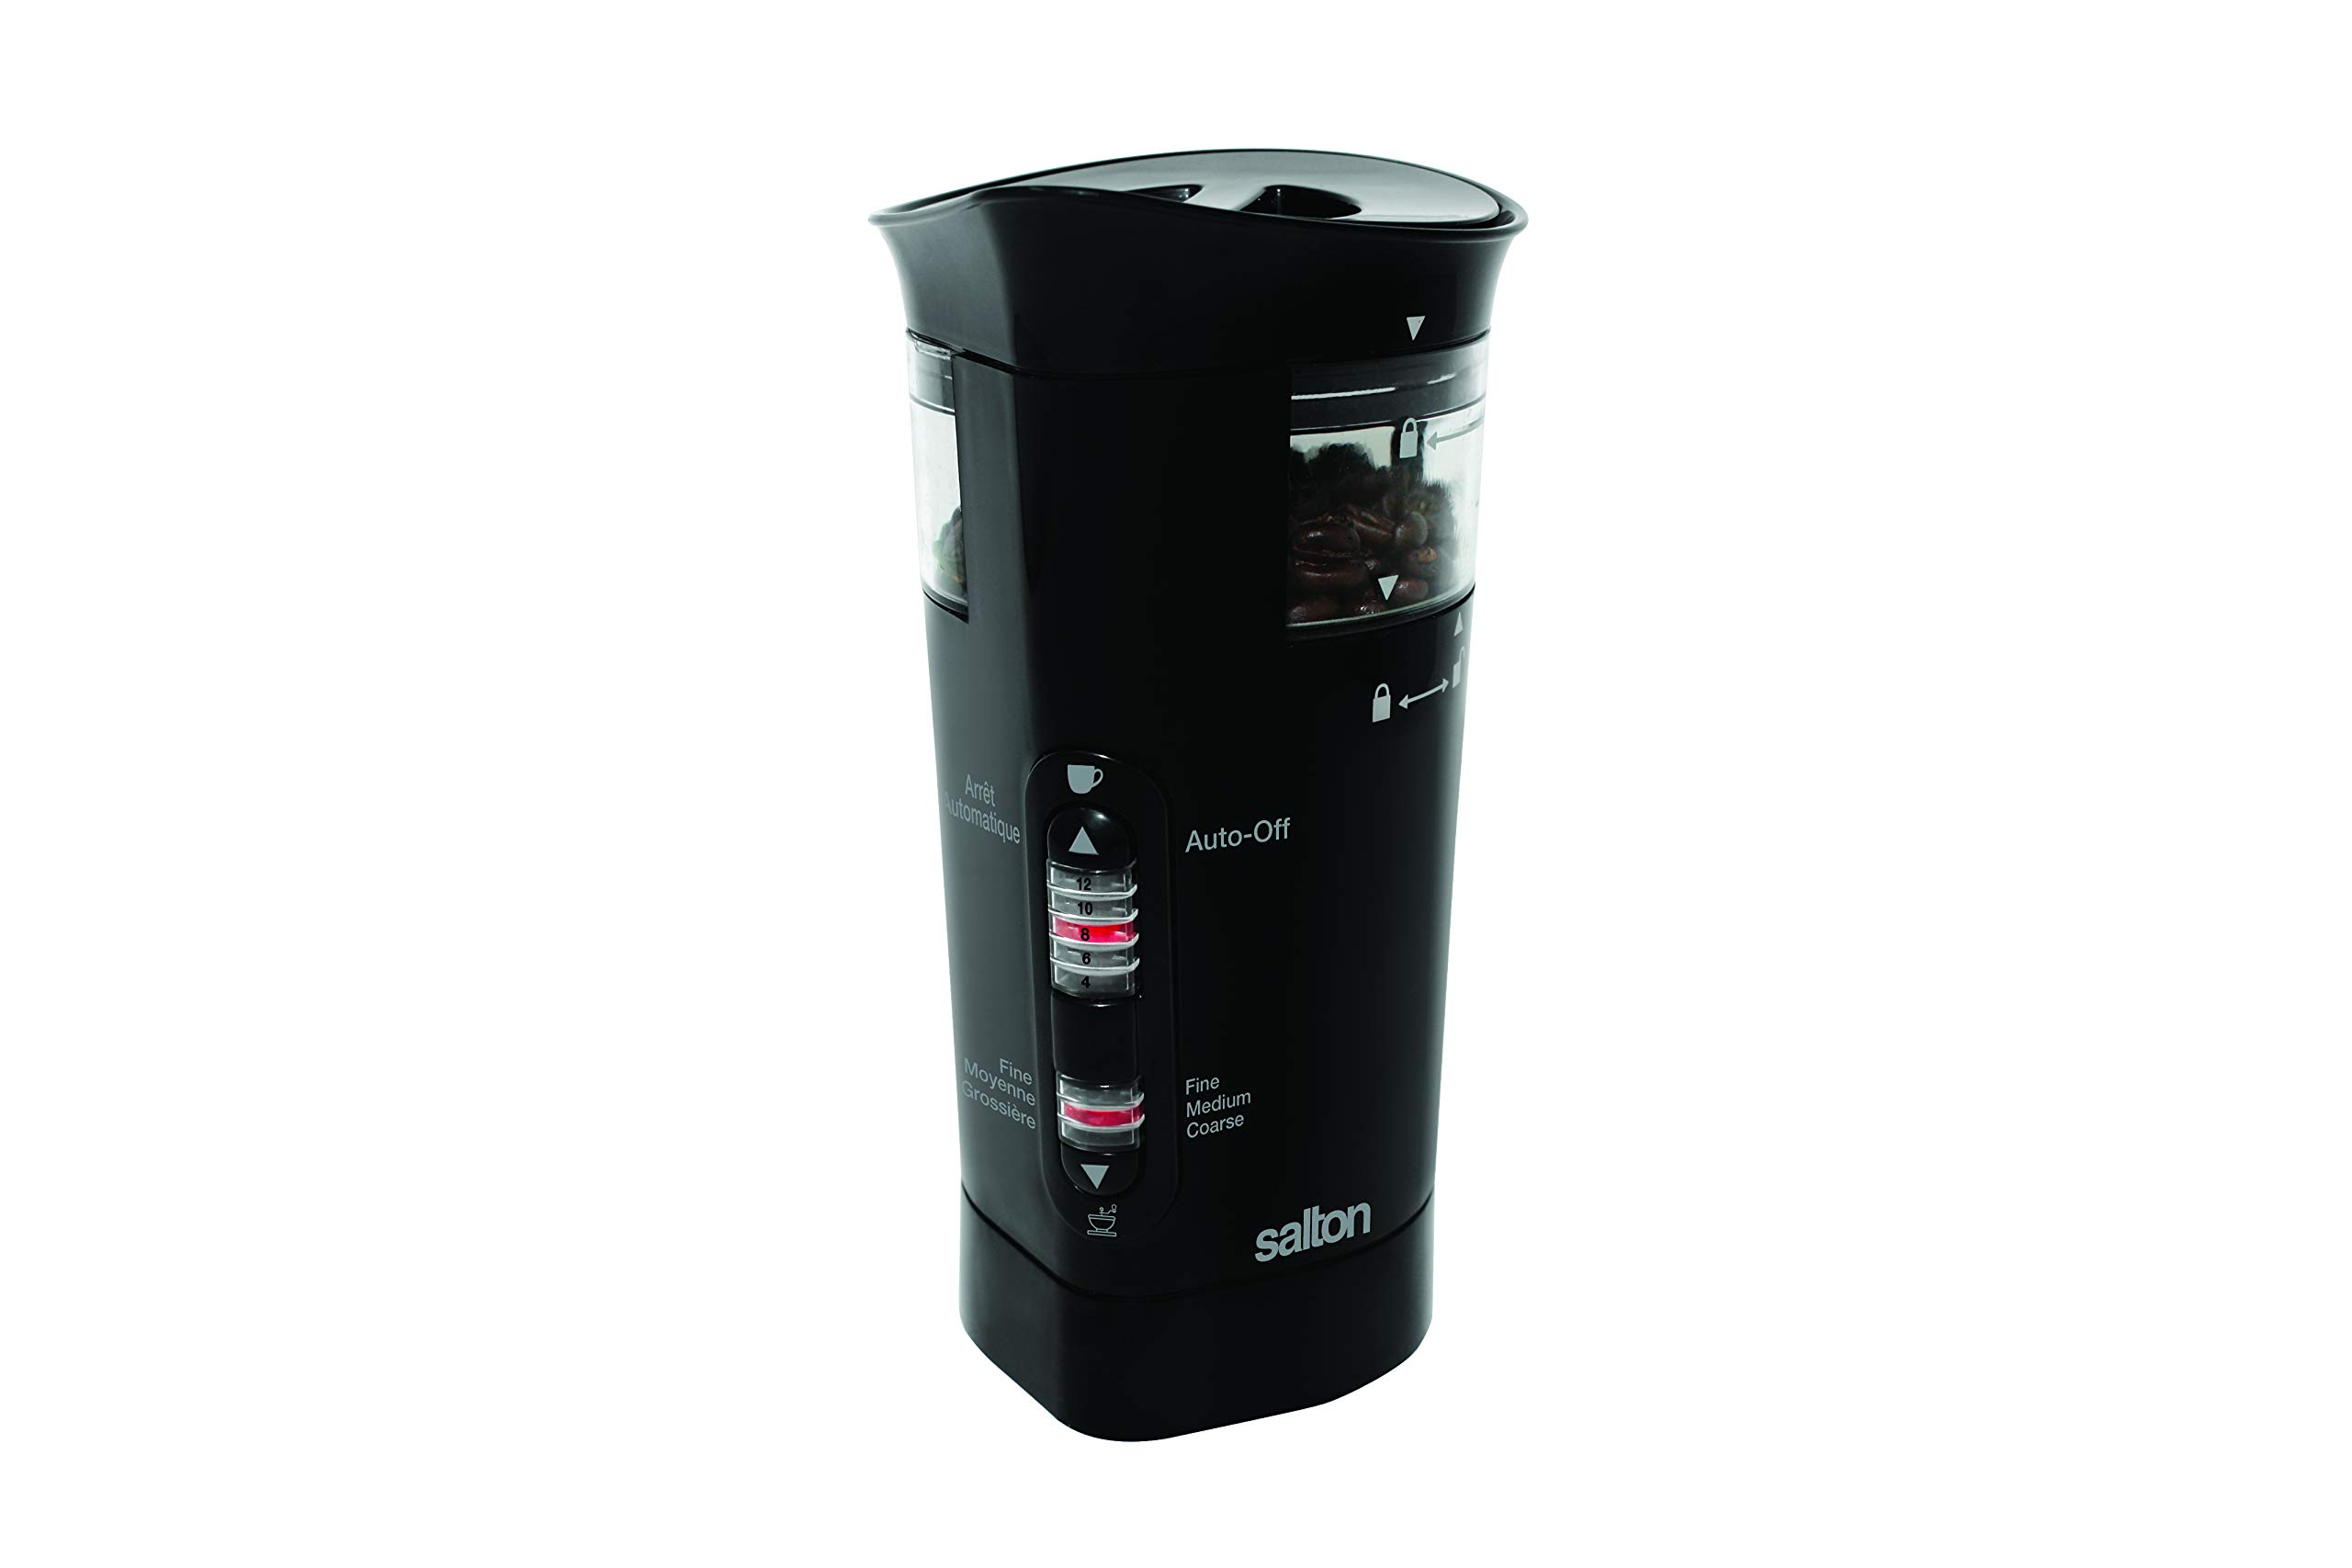 Salton CG7B Coffee and Spice Grinder Black